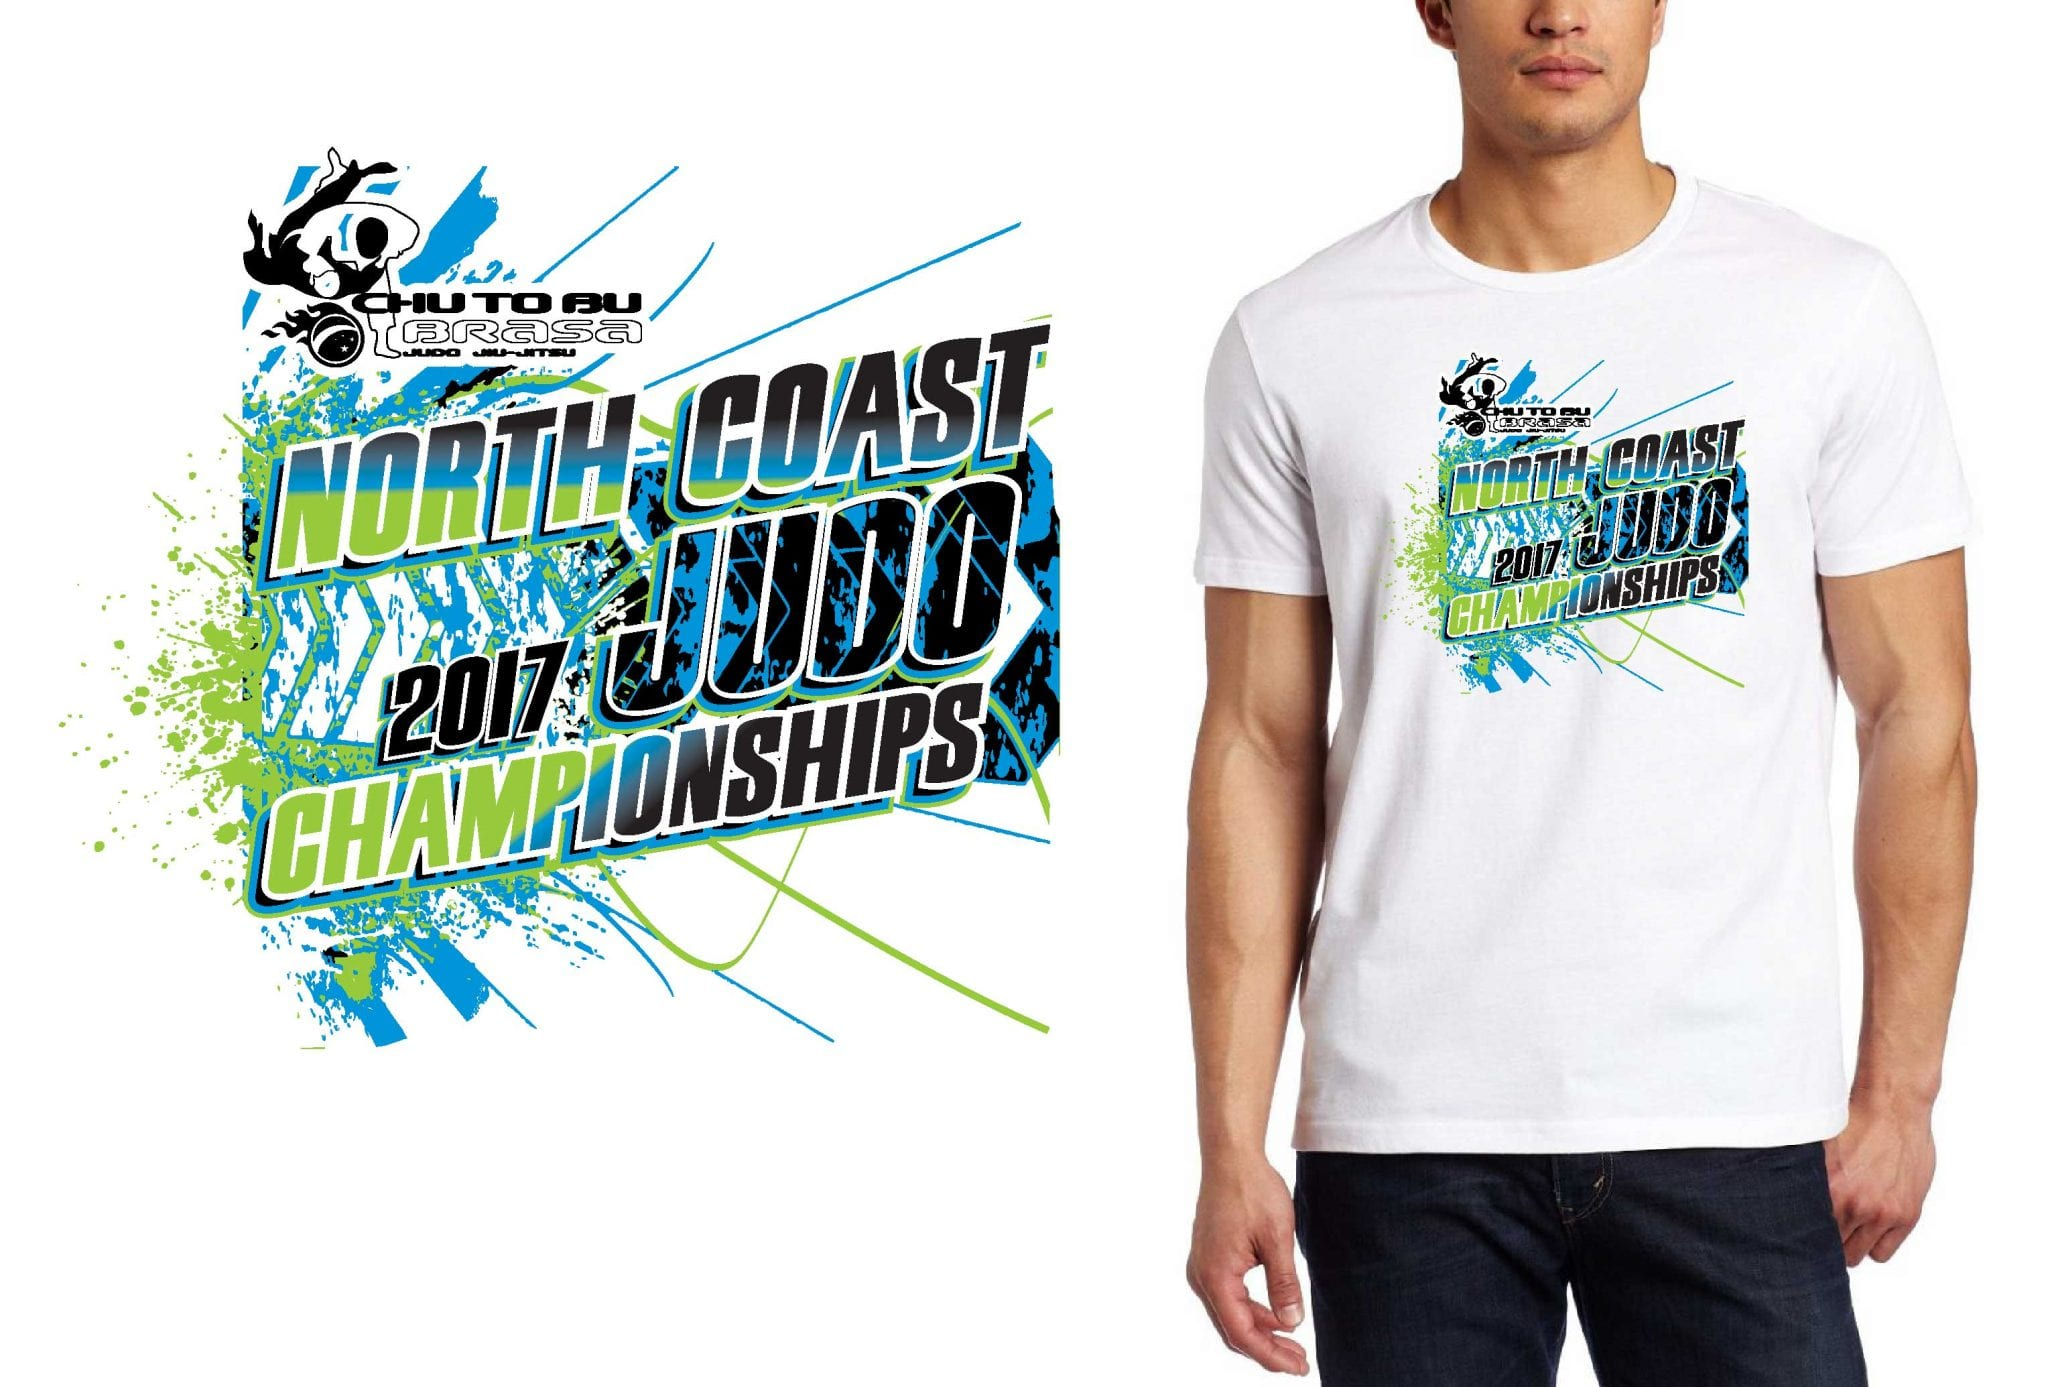 JUDO LOGO for North-Coast-Judo-Championships T-SHIRT UrArtStudio